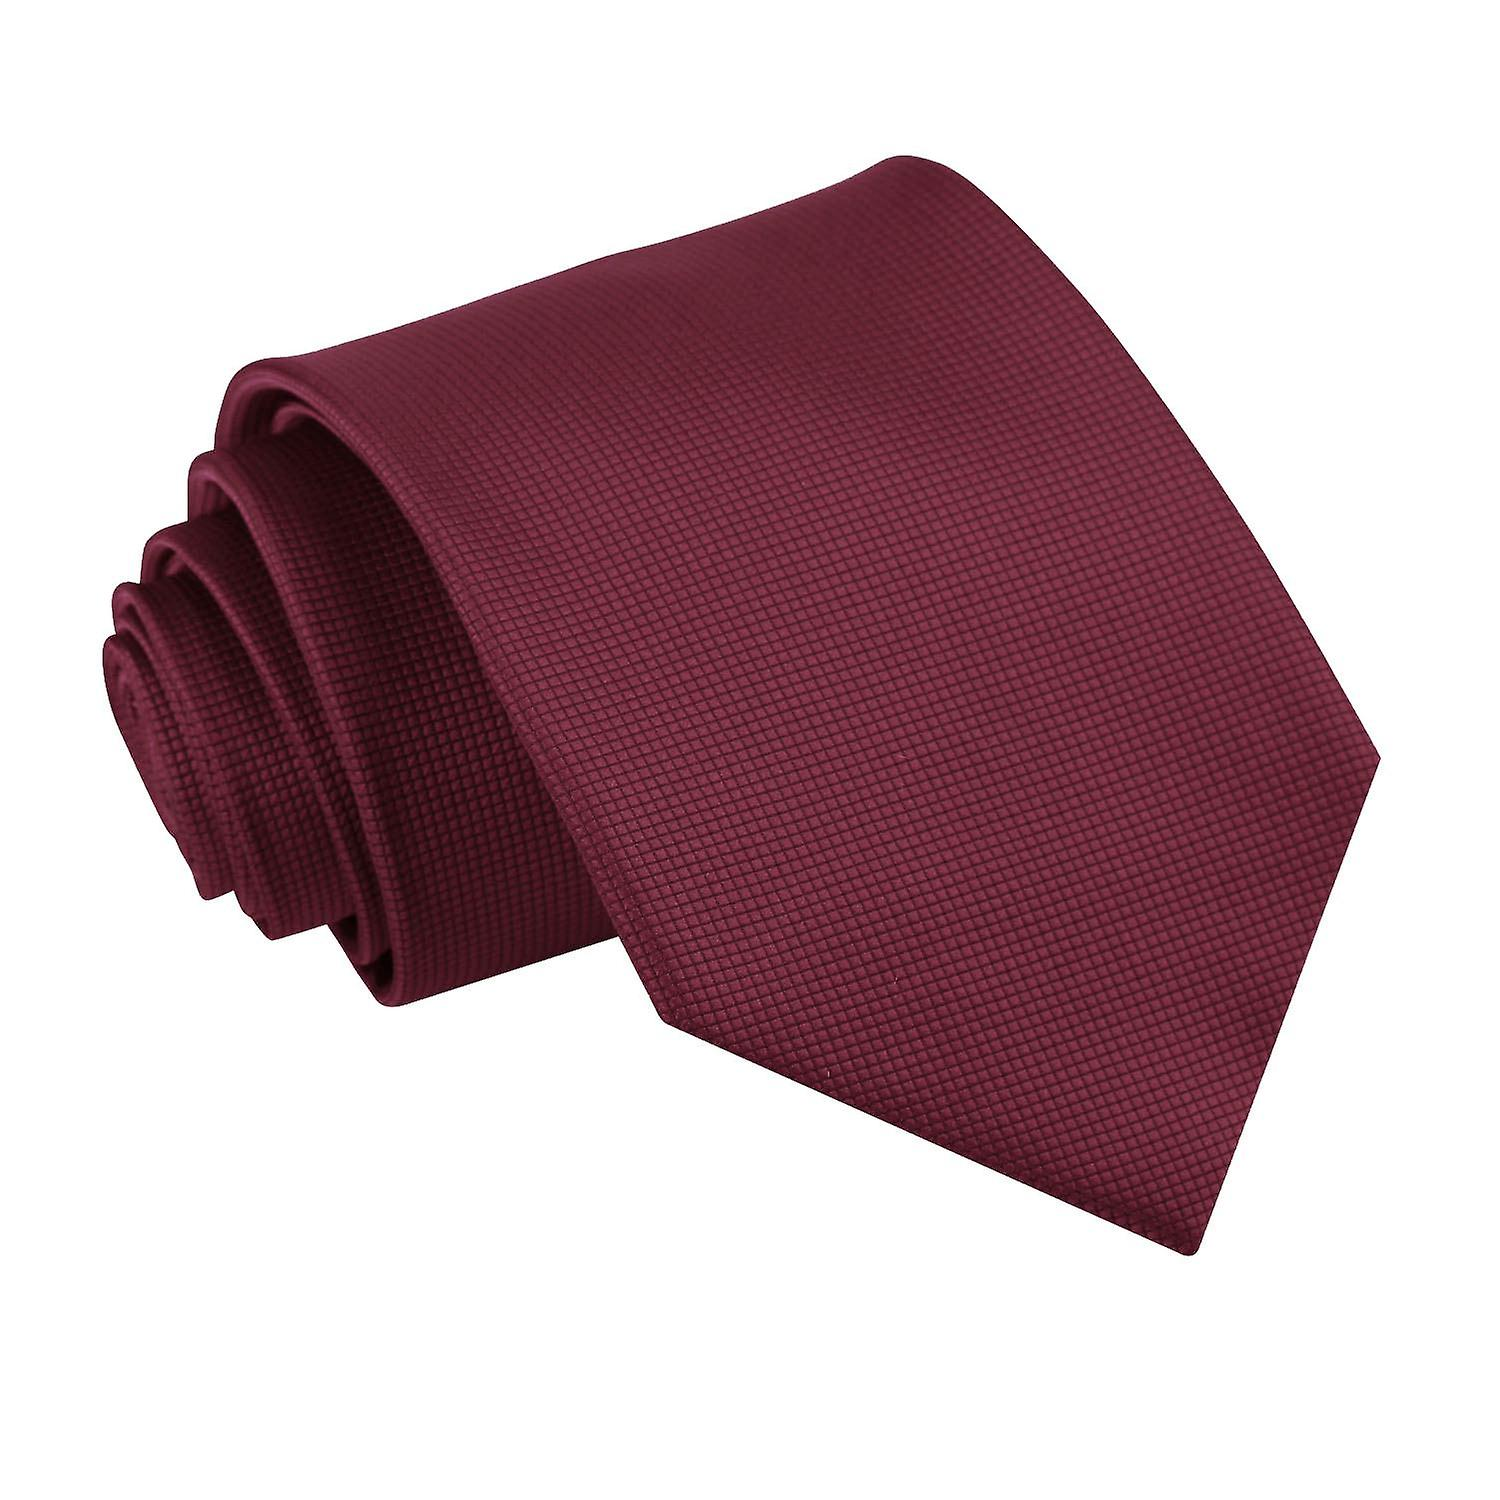 Solid Check Burgundy Tie